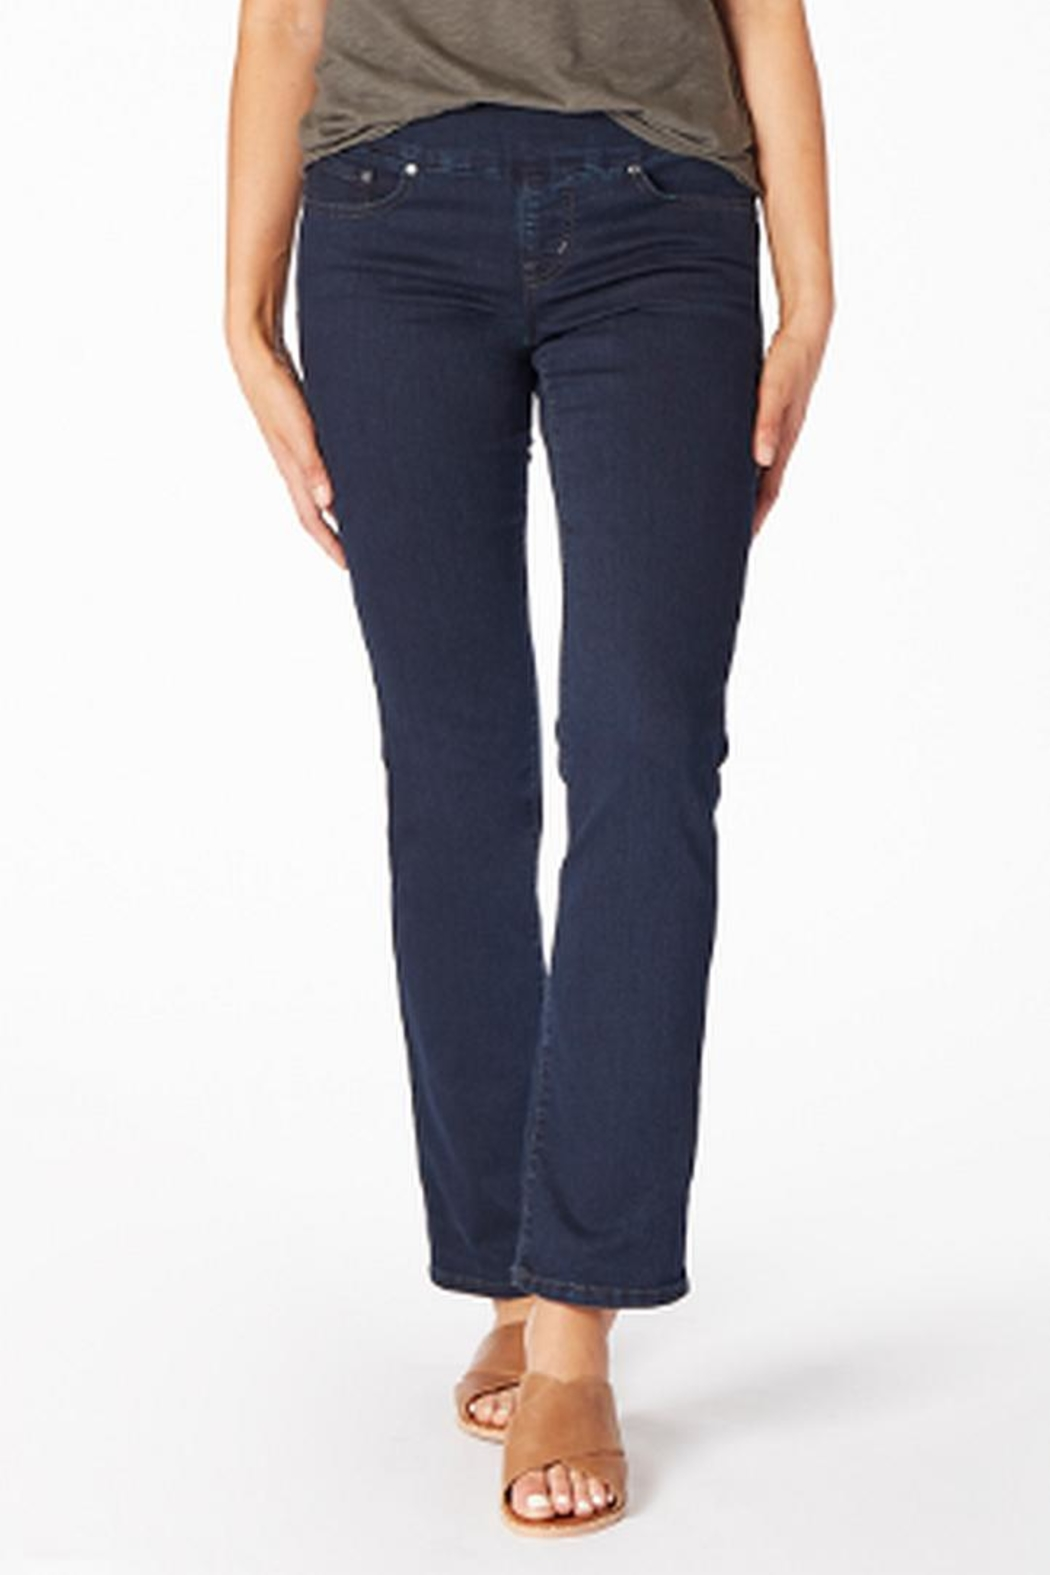 JAG Peri Straight Jeans - Main Image